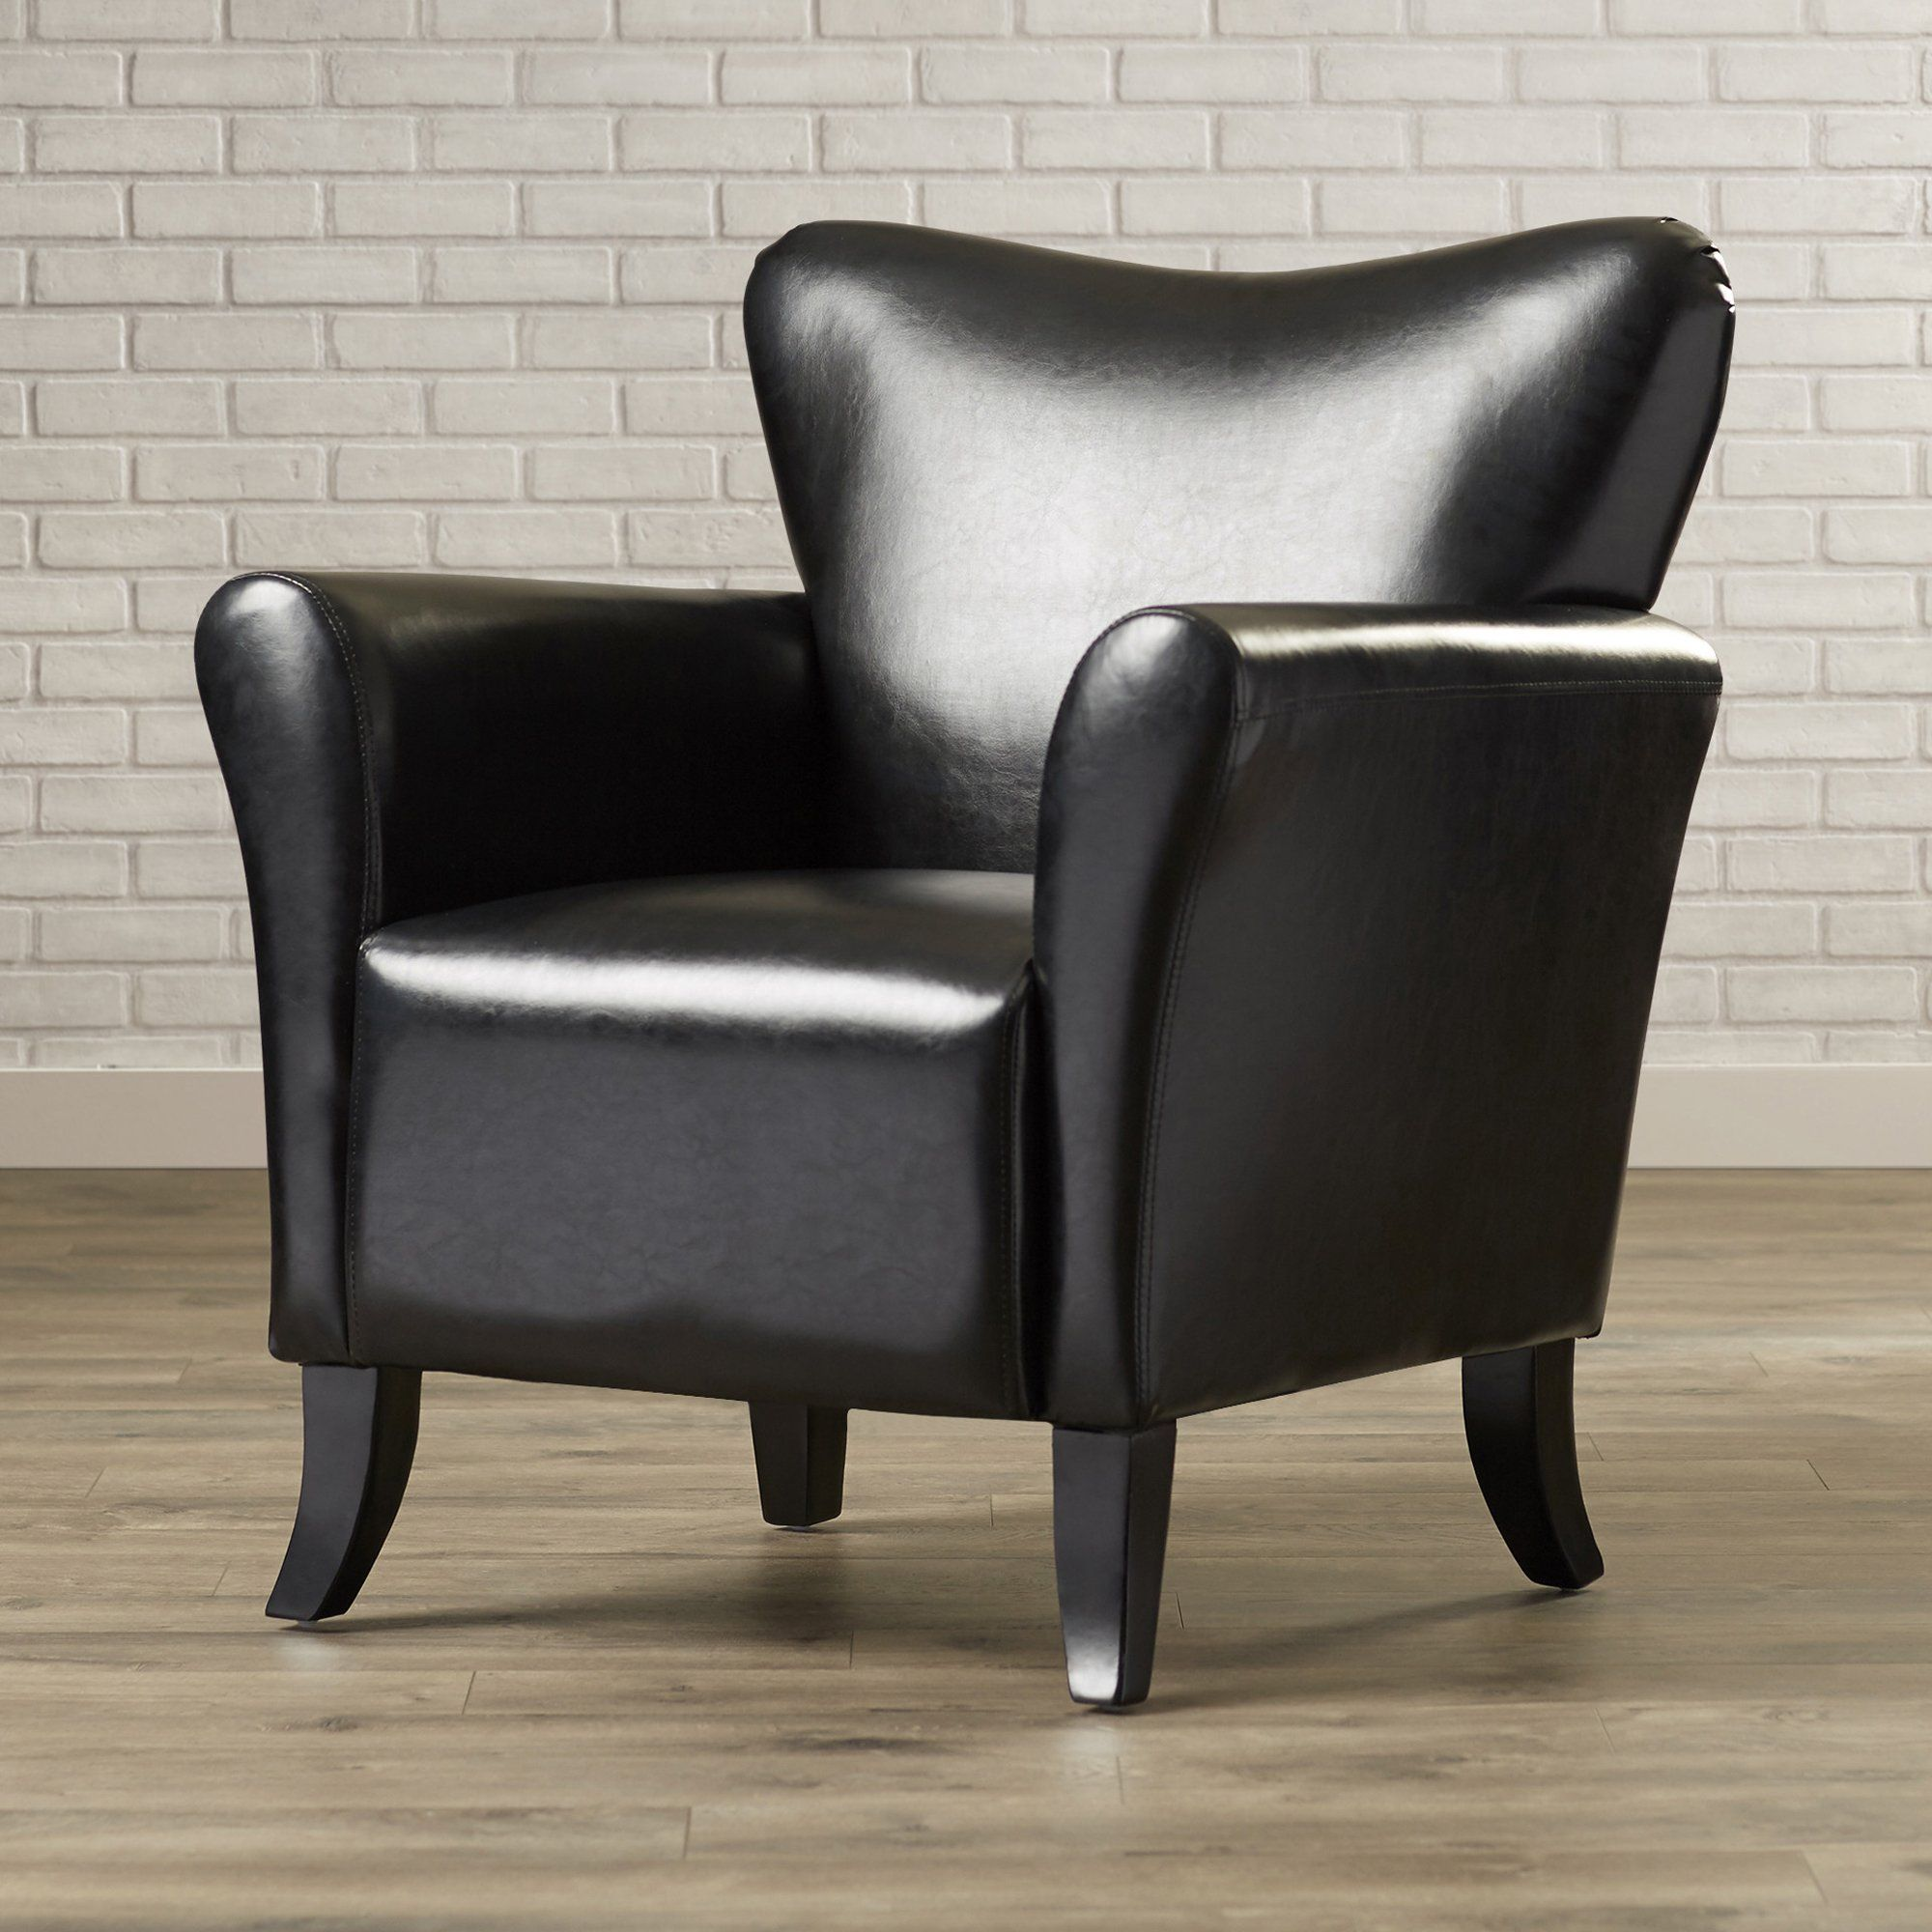 Contemporary Arm Chair For Living Room Black Faux Leather Upholstered Armchair Accent Comfortable Club